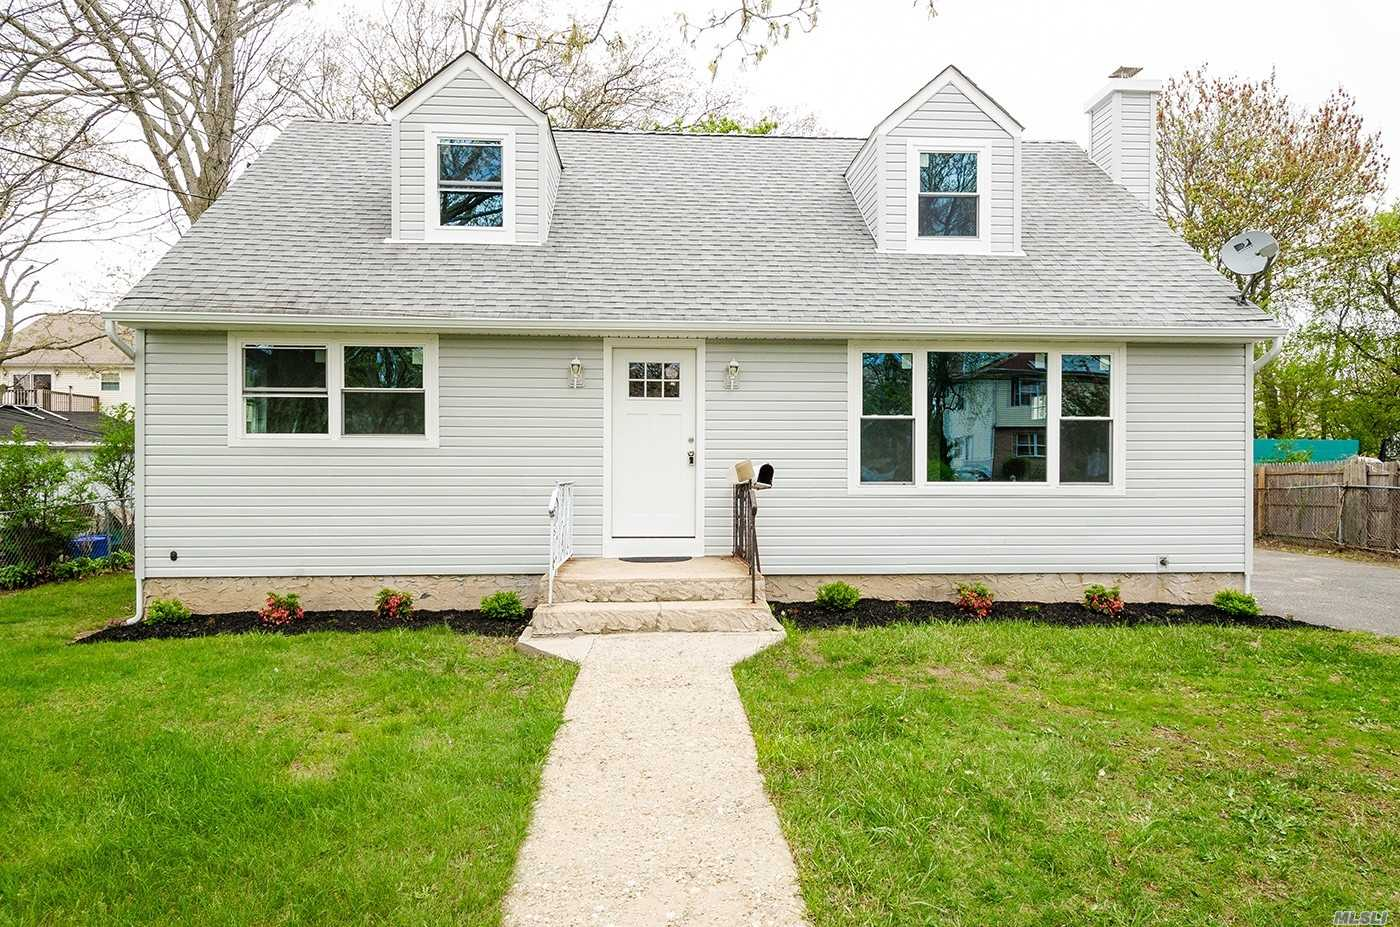 Completely Renovated Turn Key Expansive Cape. New Kitchen with stainless steel appliances and quartz counter top, Modern designed bathroom, new Siding, Flooring, and Windows. Full basement with tremendous storage. Low Taxes!